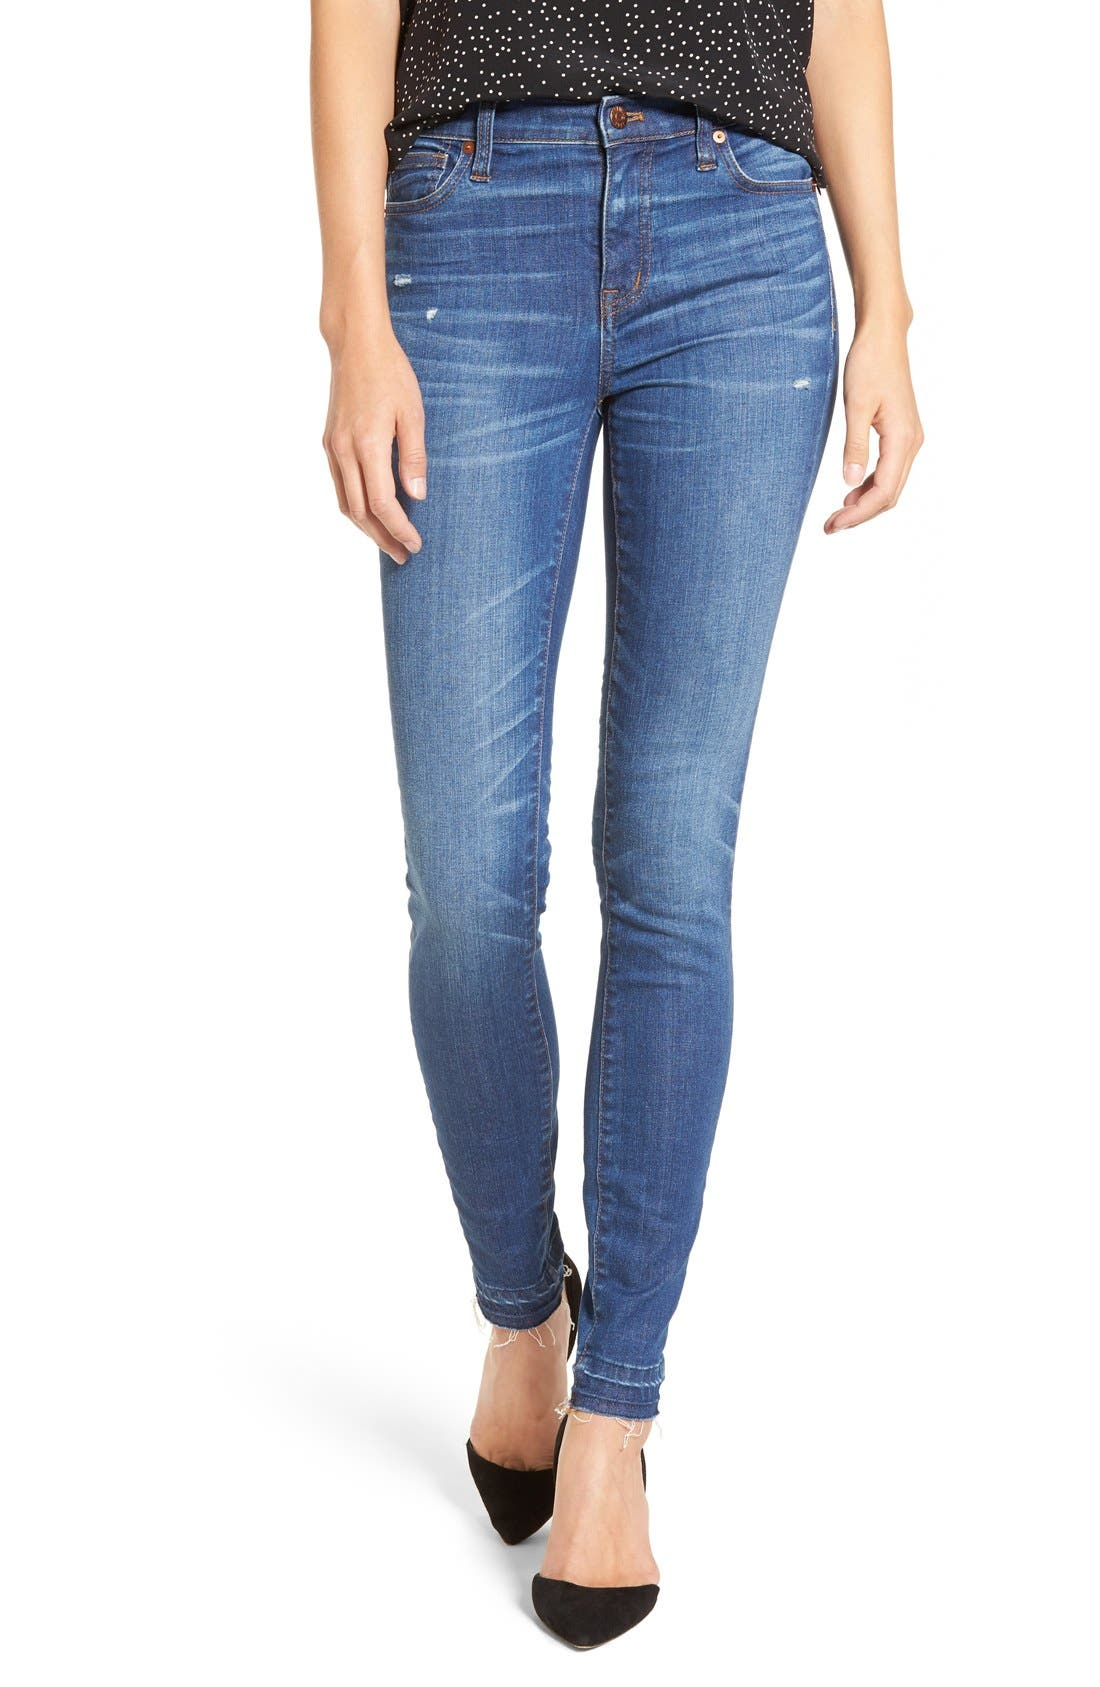 Alternate Image 1 Selected - Madewell High Rise Skinny Jeans (Hammond Wash)